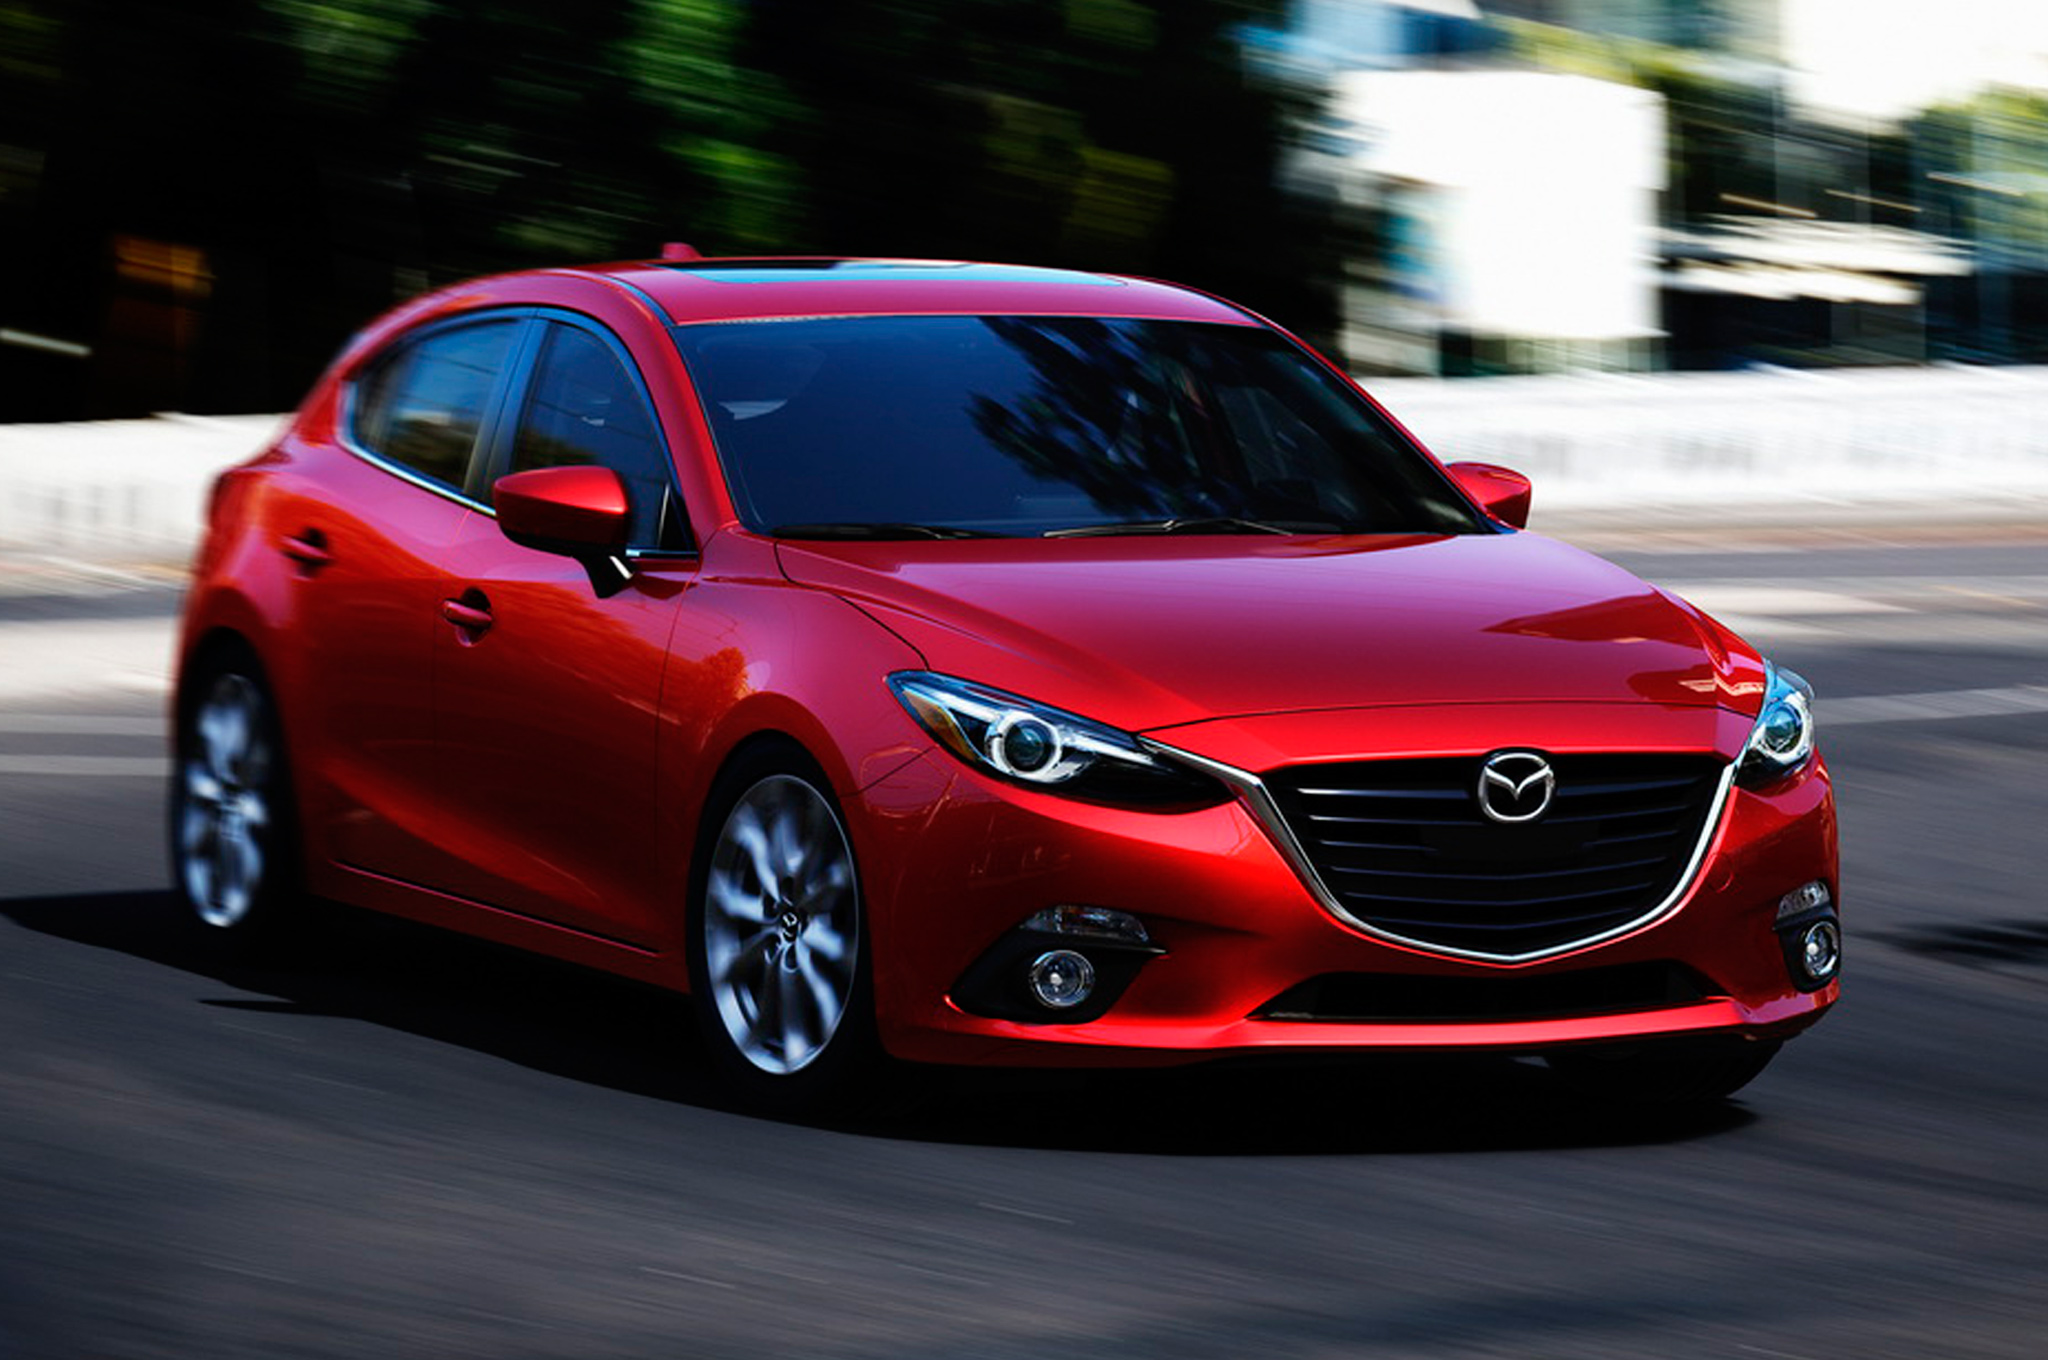 Official: 2014 Mazda3 Starts At $17,740, Achieves 41 MPG Highway